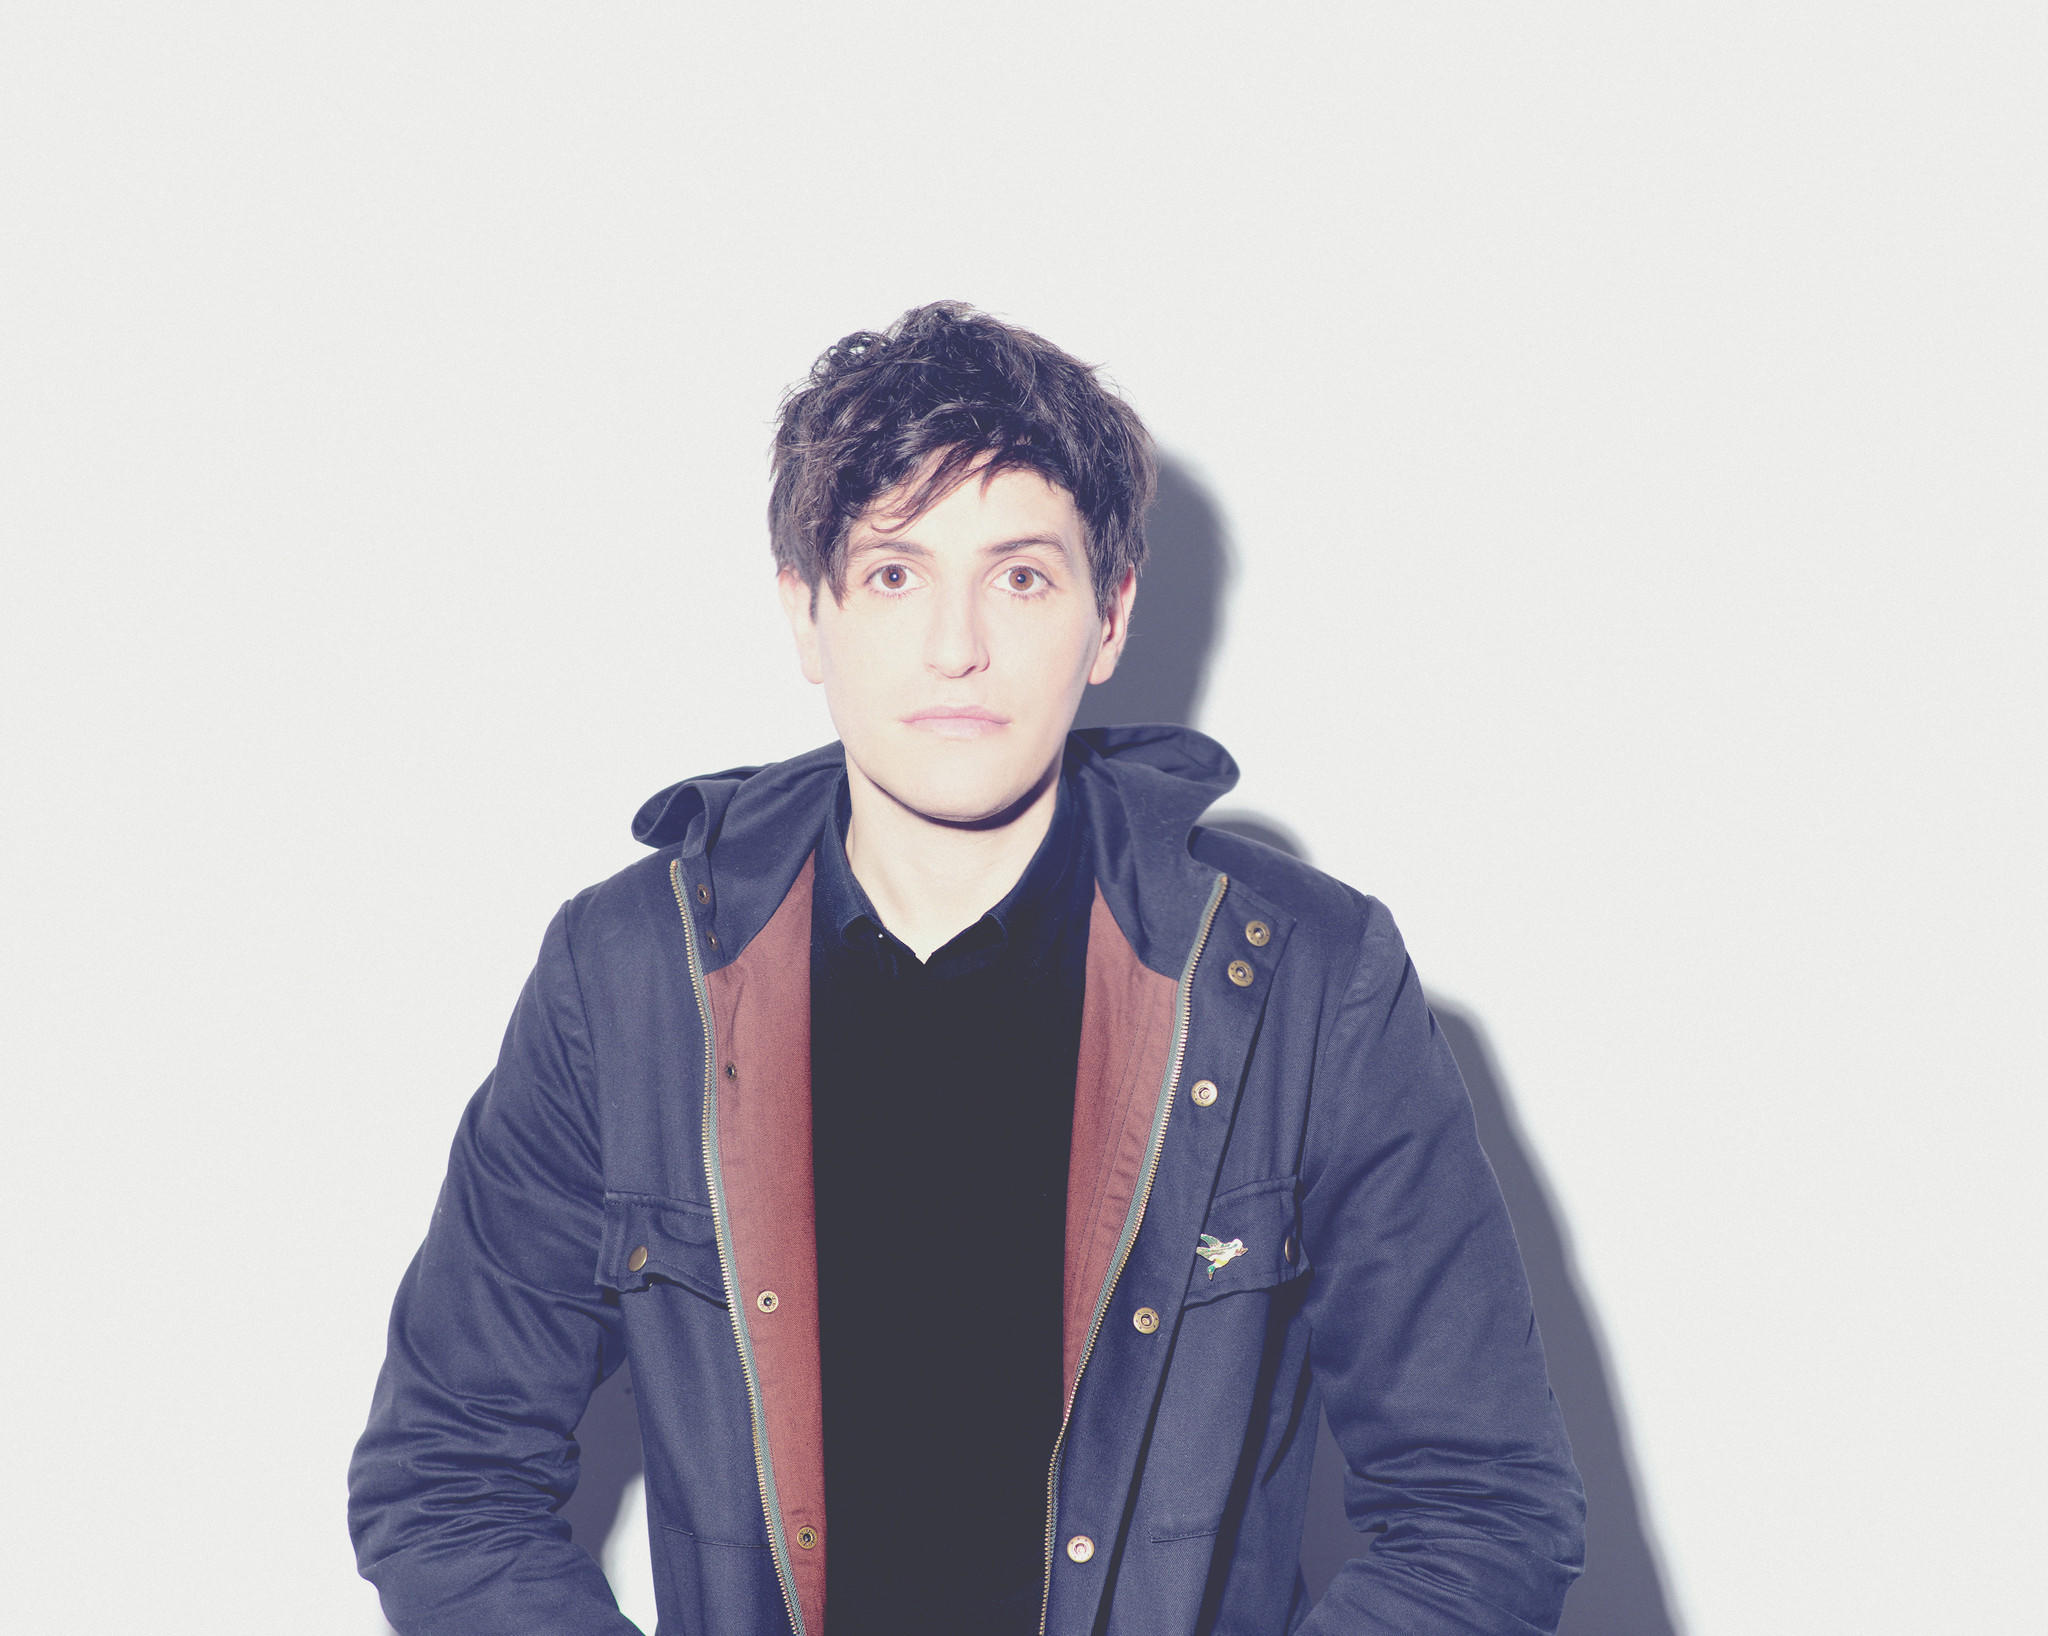 Led by Kip Berman (pictured), The Pains of Being Pure at Heart will release its third album in April.